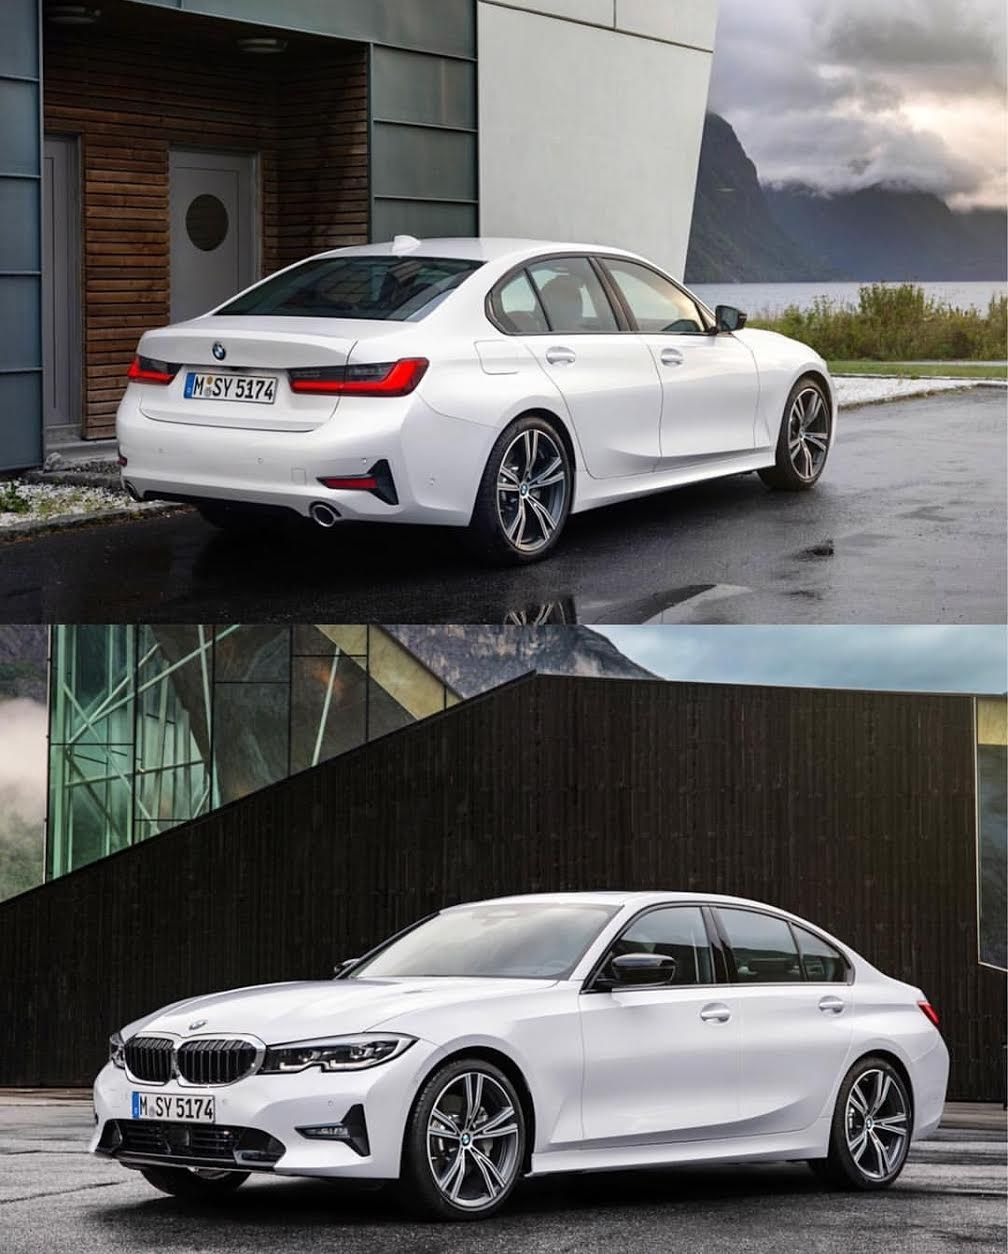 new bmw 3 series (g20) looks best in white